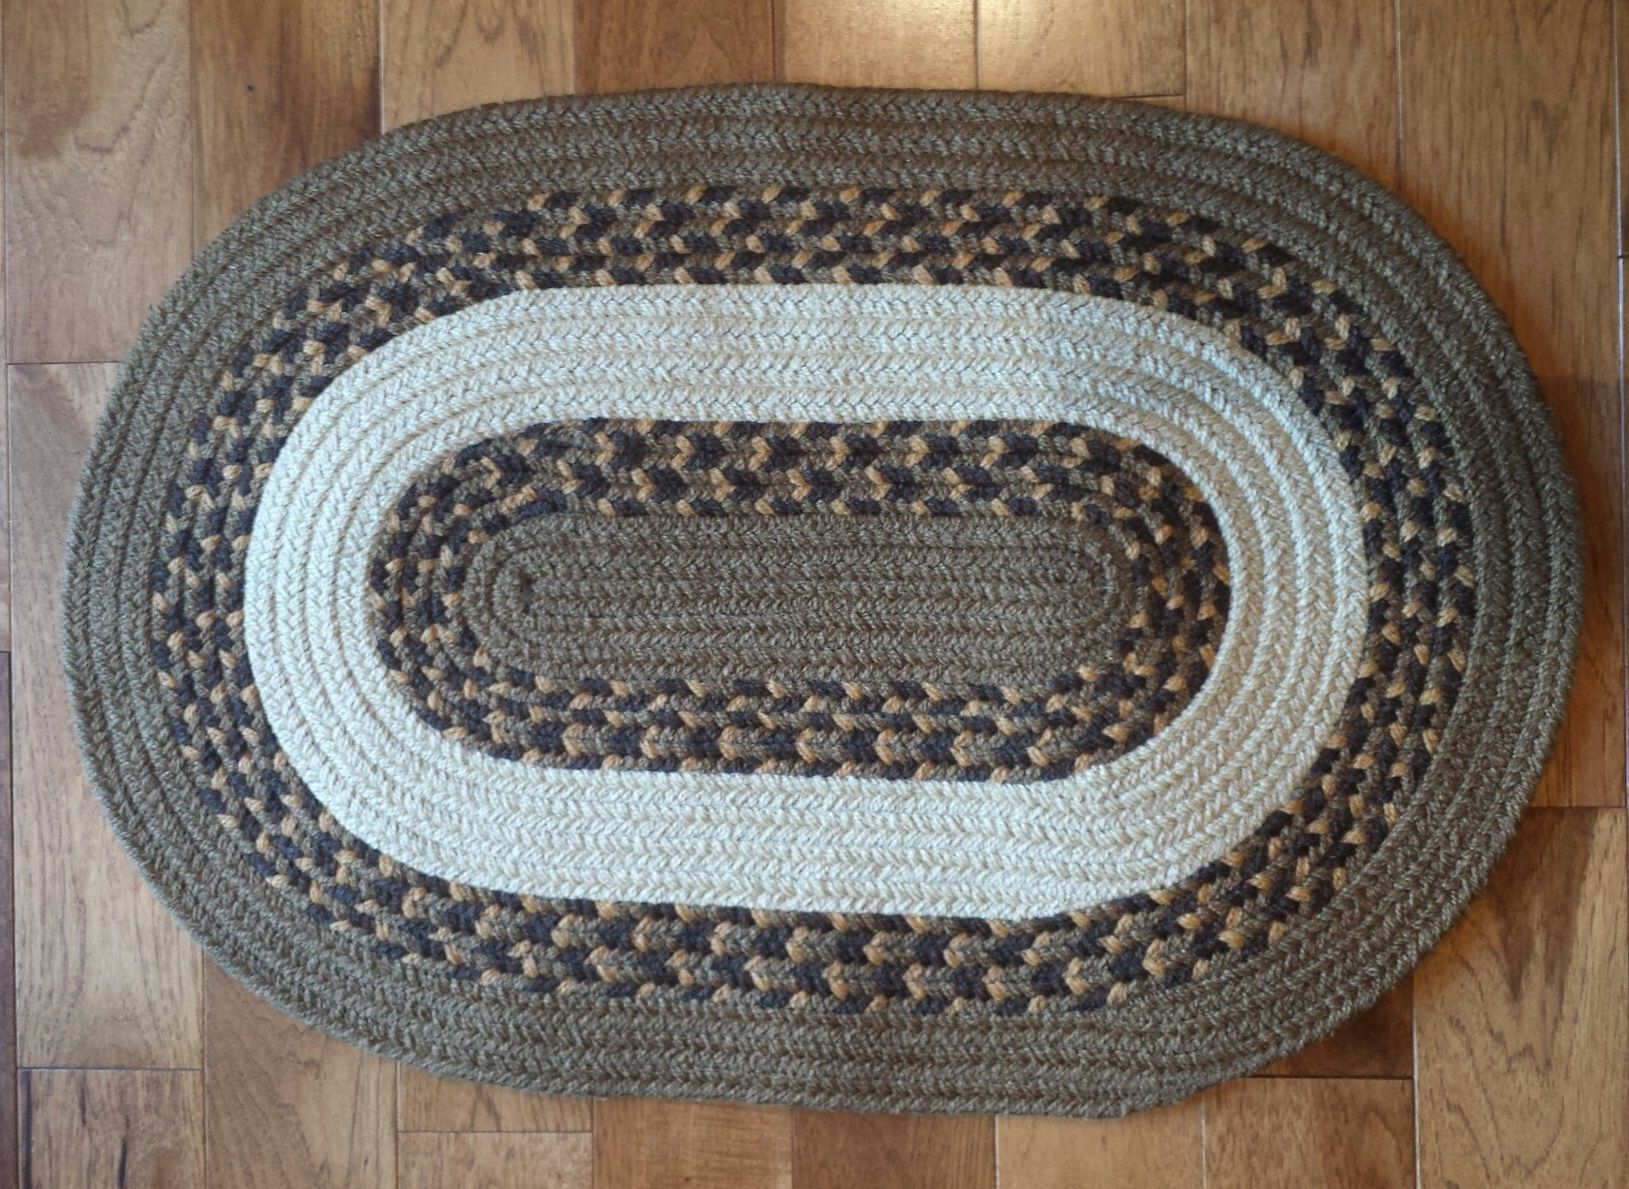 Custom Rug Machusetts Using Charles Blend Heather Dark Wicker Block Cream This High Quality Braided Is Made By American Workers At Our